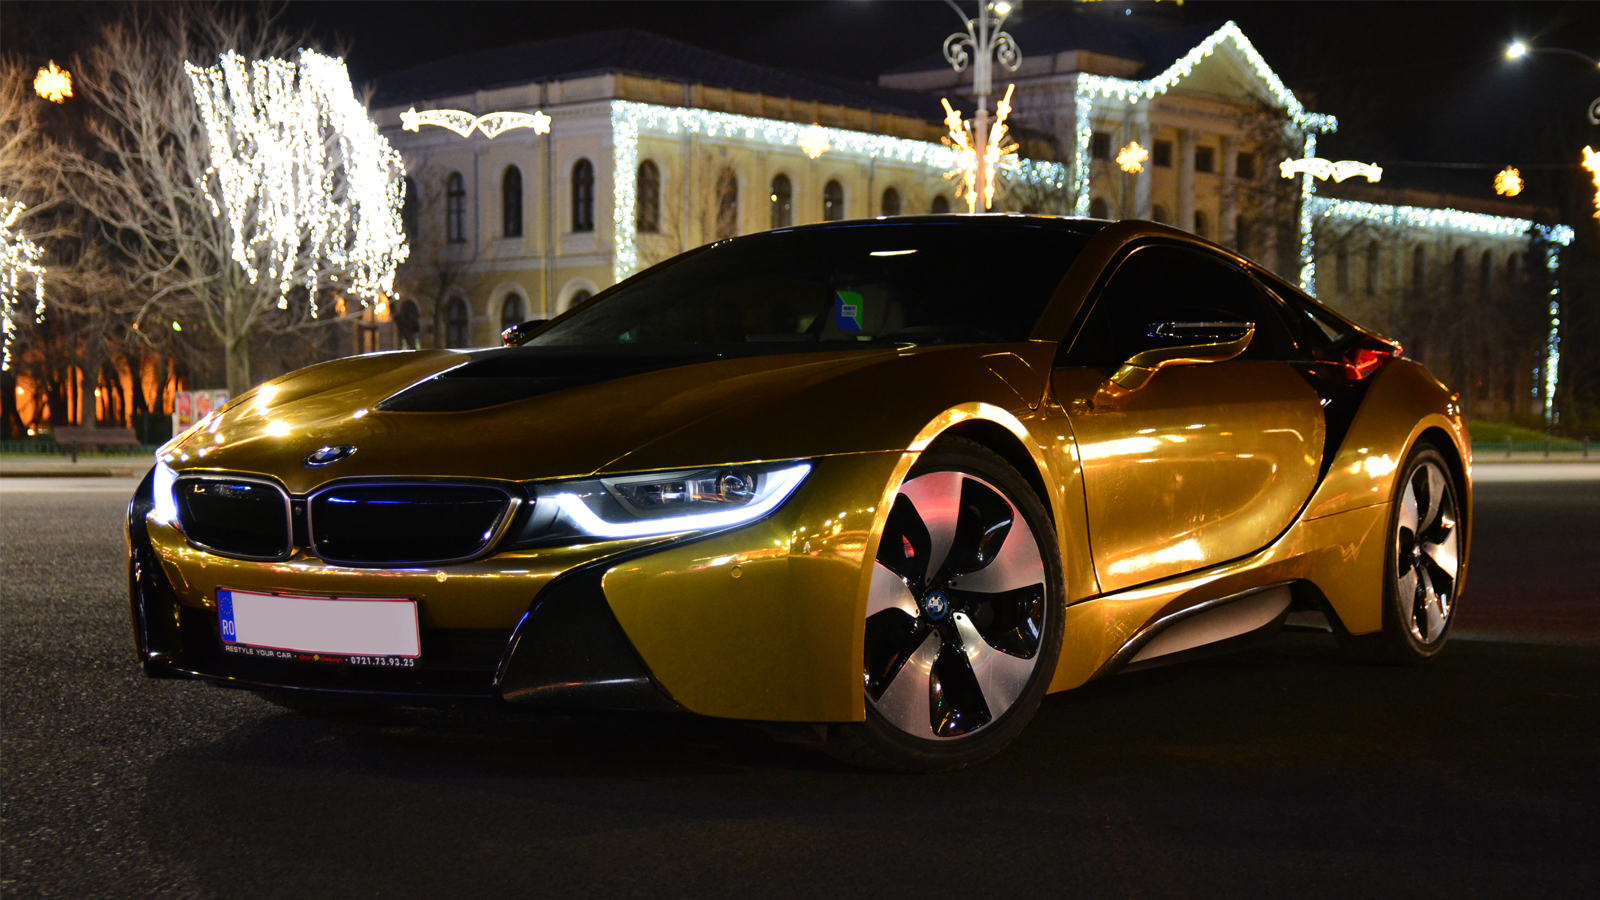 Golden Bmw I8 2016 Gold Bmw I8 Wrap It Up Lv Vik Chohan